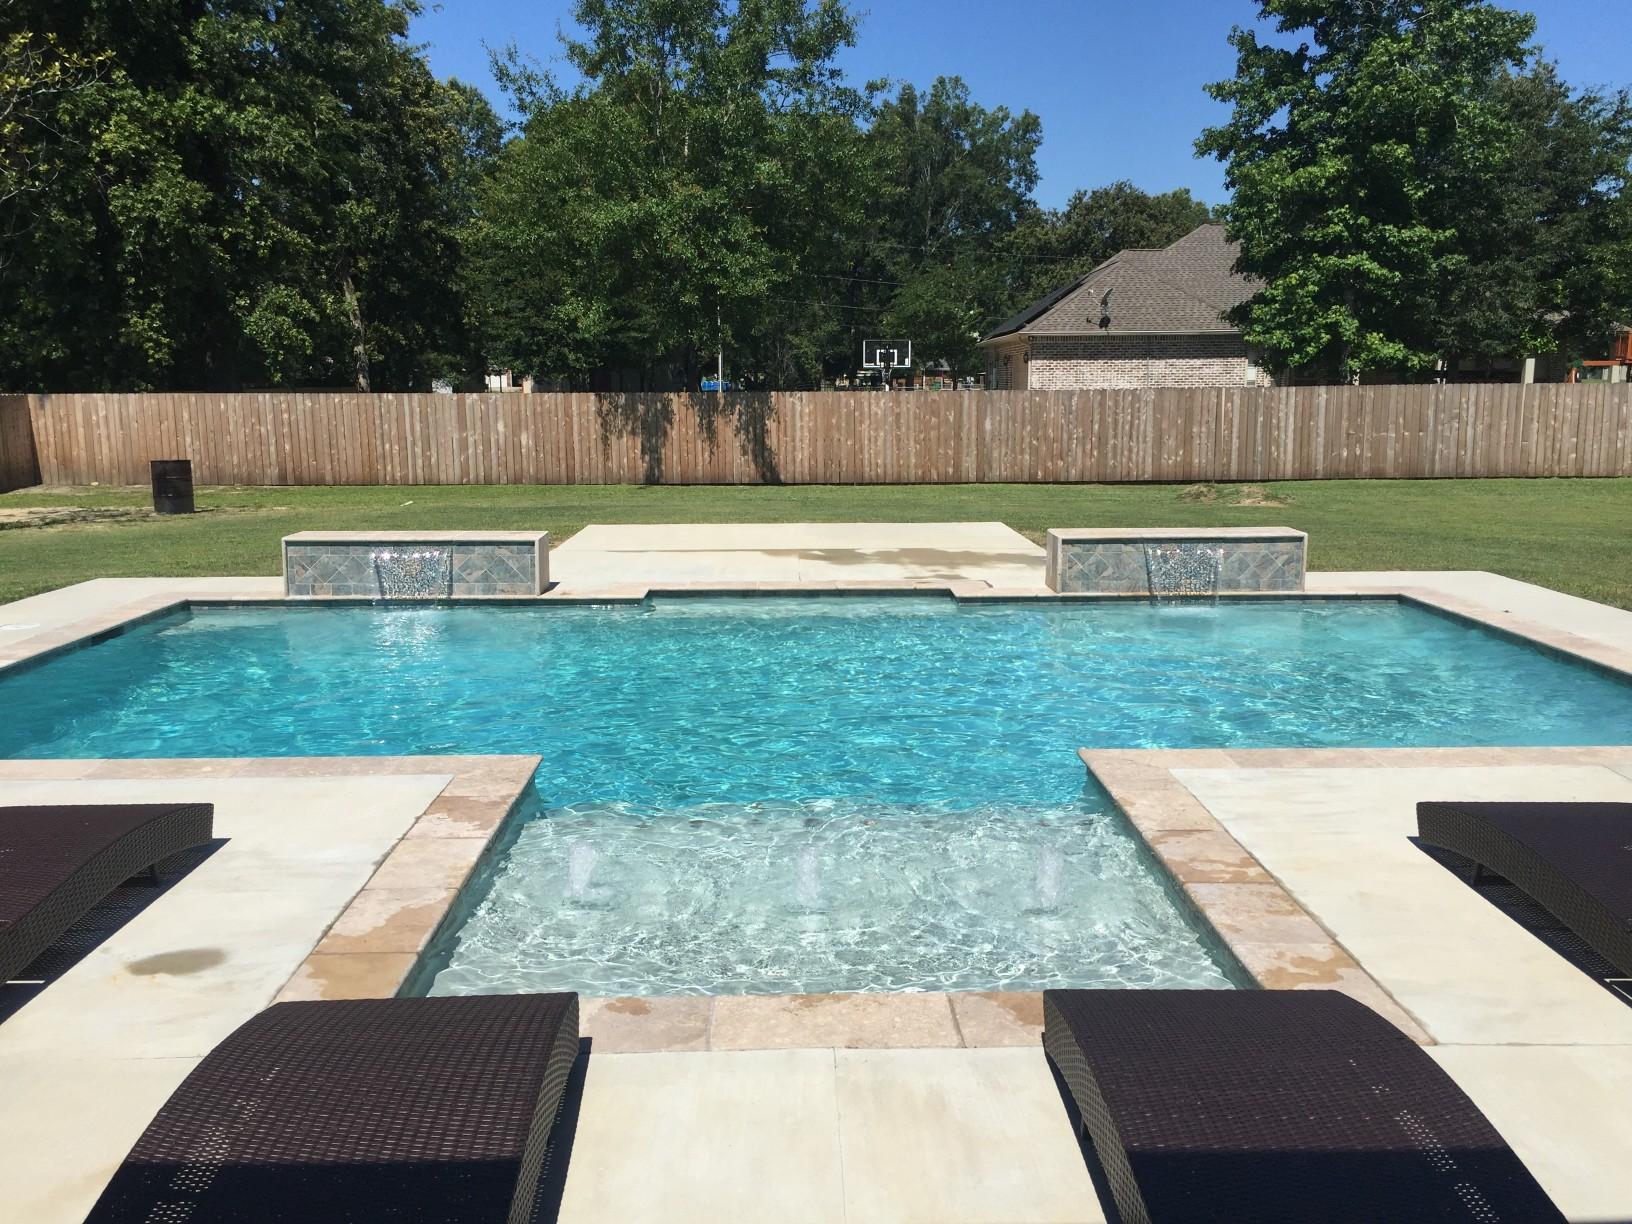 custom swimming pool contractor hammond, louisiana (276)